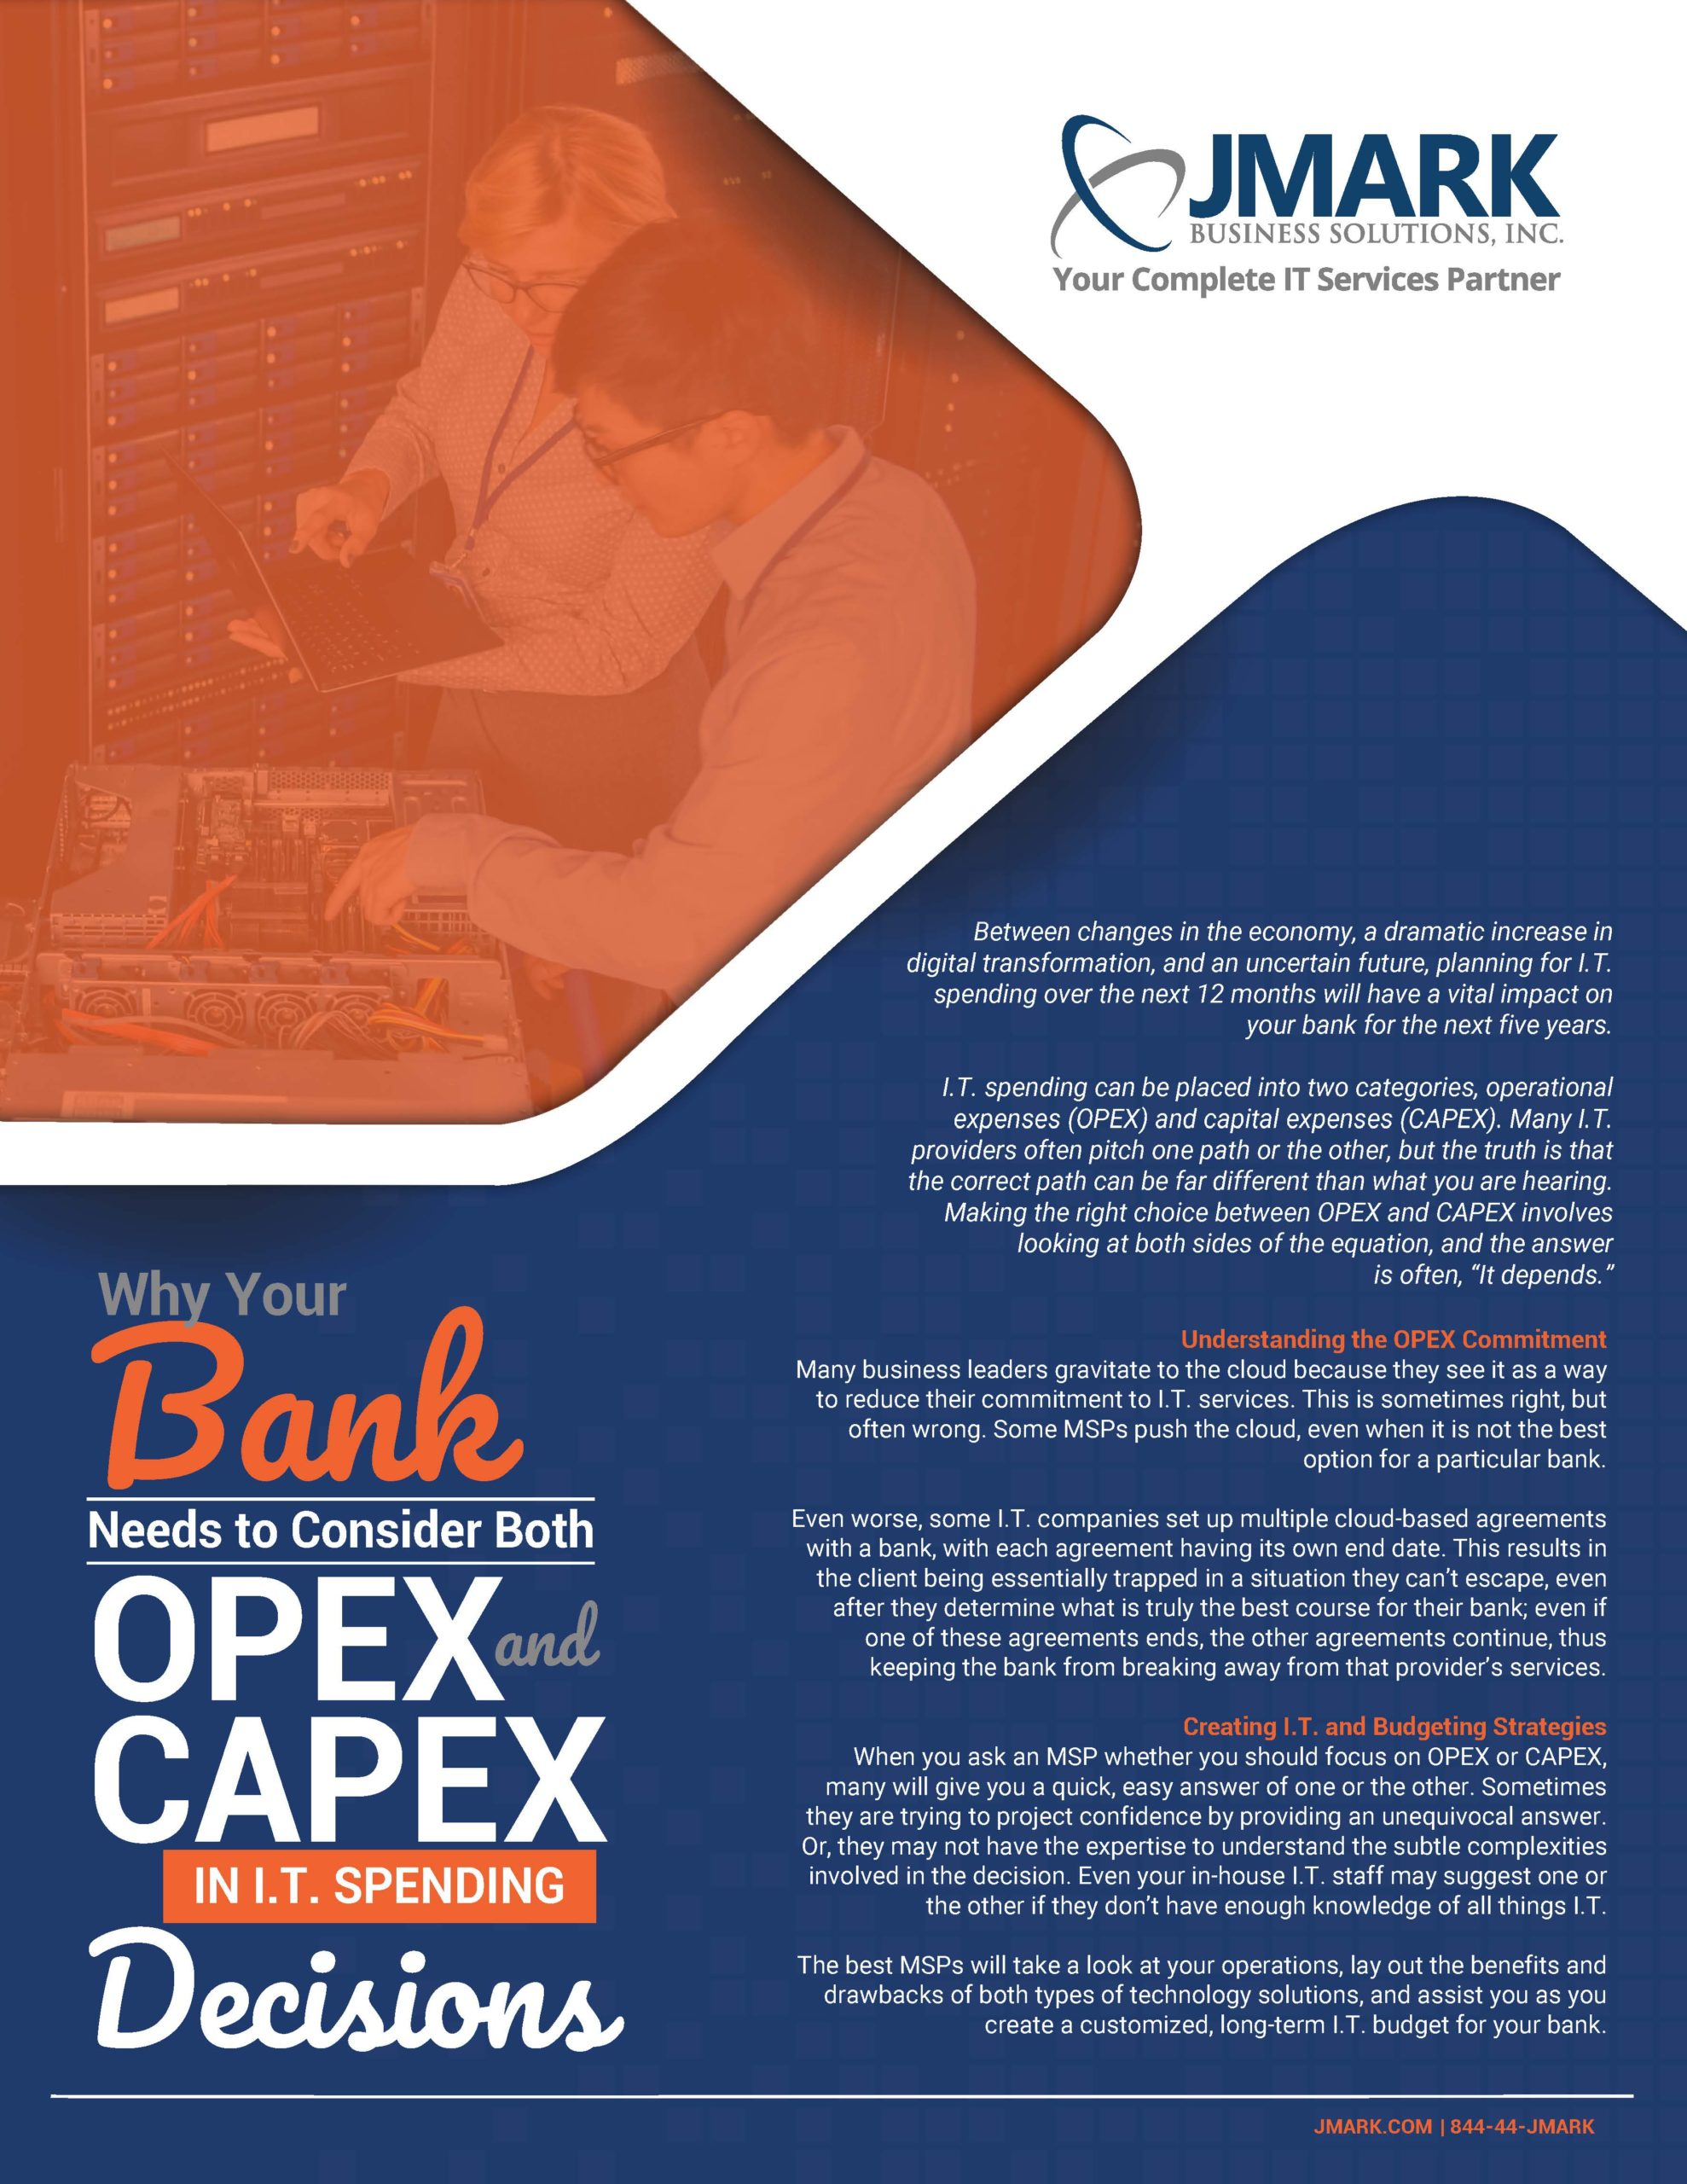 Why Your Bank Needs to Consider Both OPEX and CAPEX in I.T. Spending Decisions